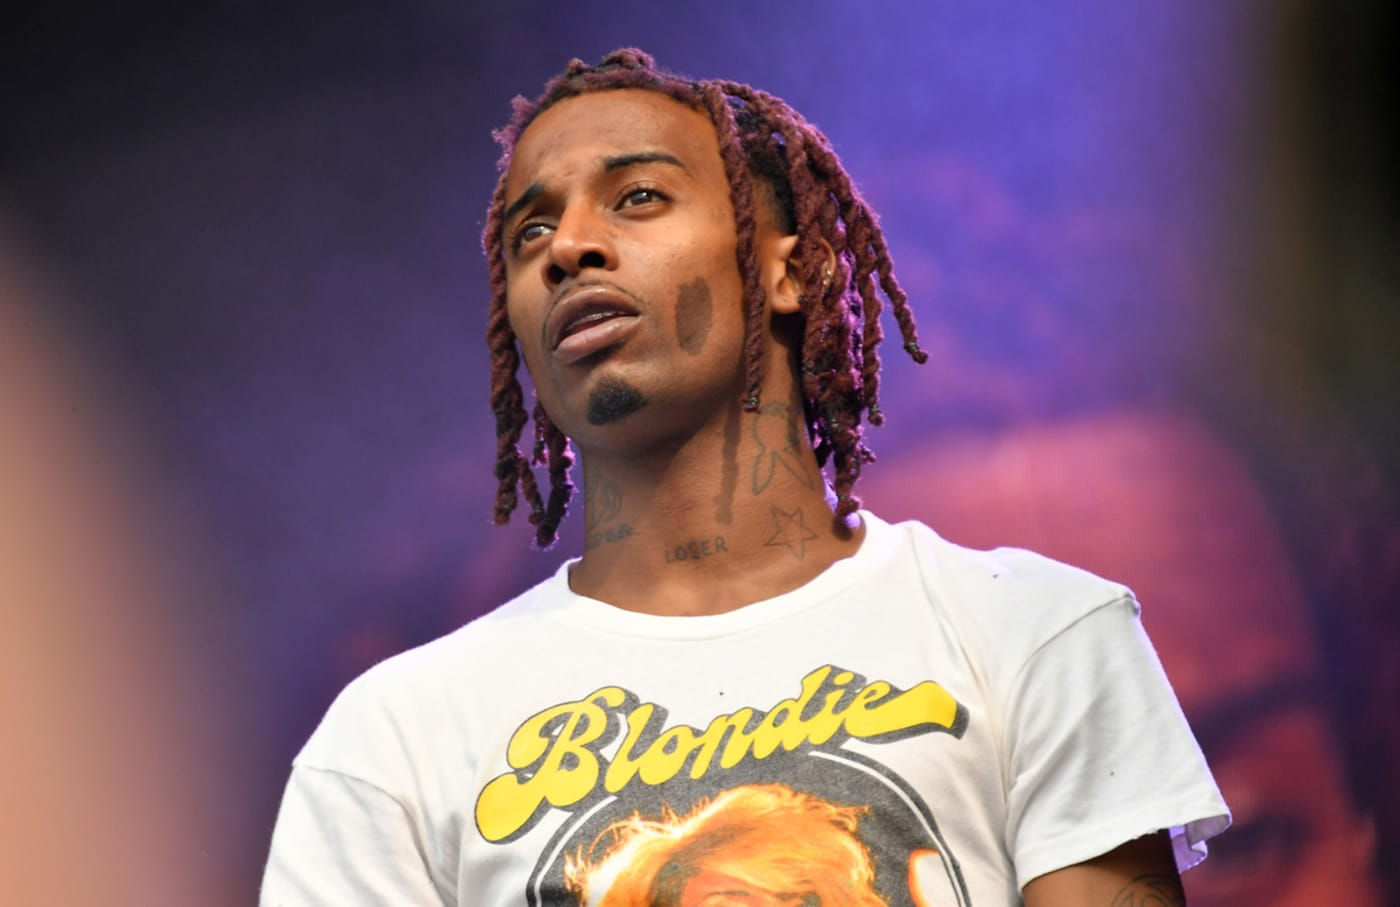 Everything we know about Playboi Carti's new album 'Whole Lotta Red'